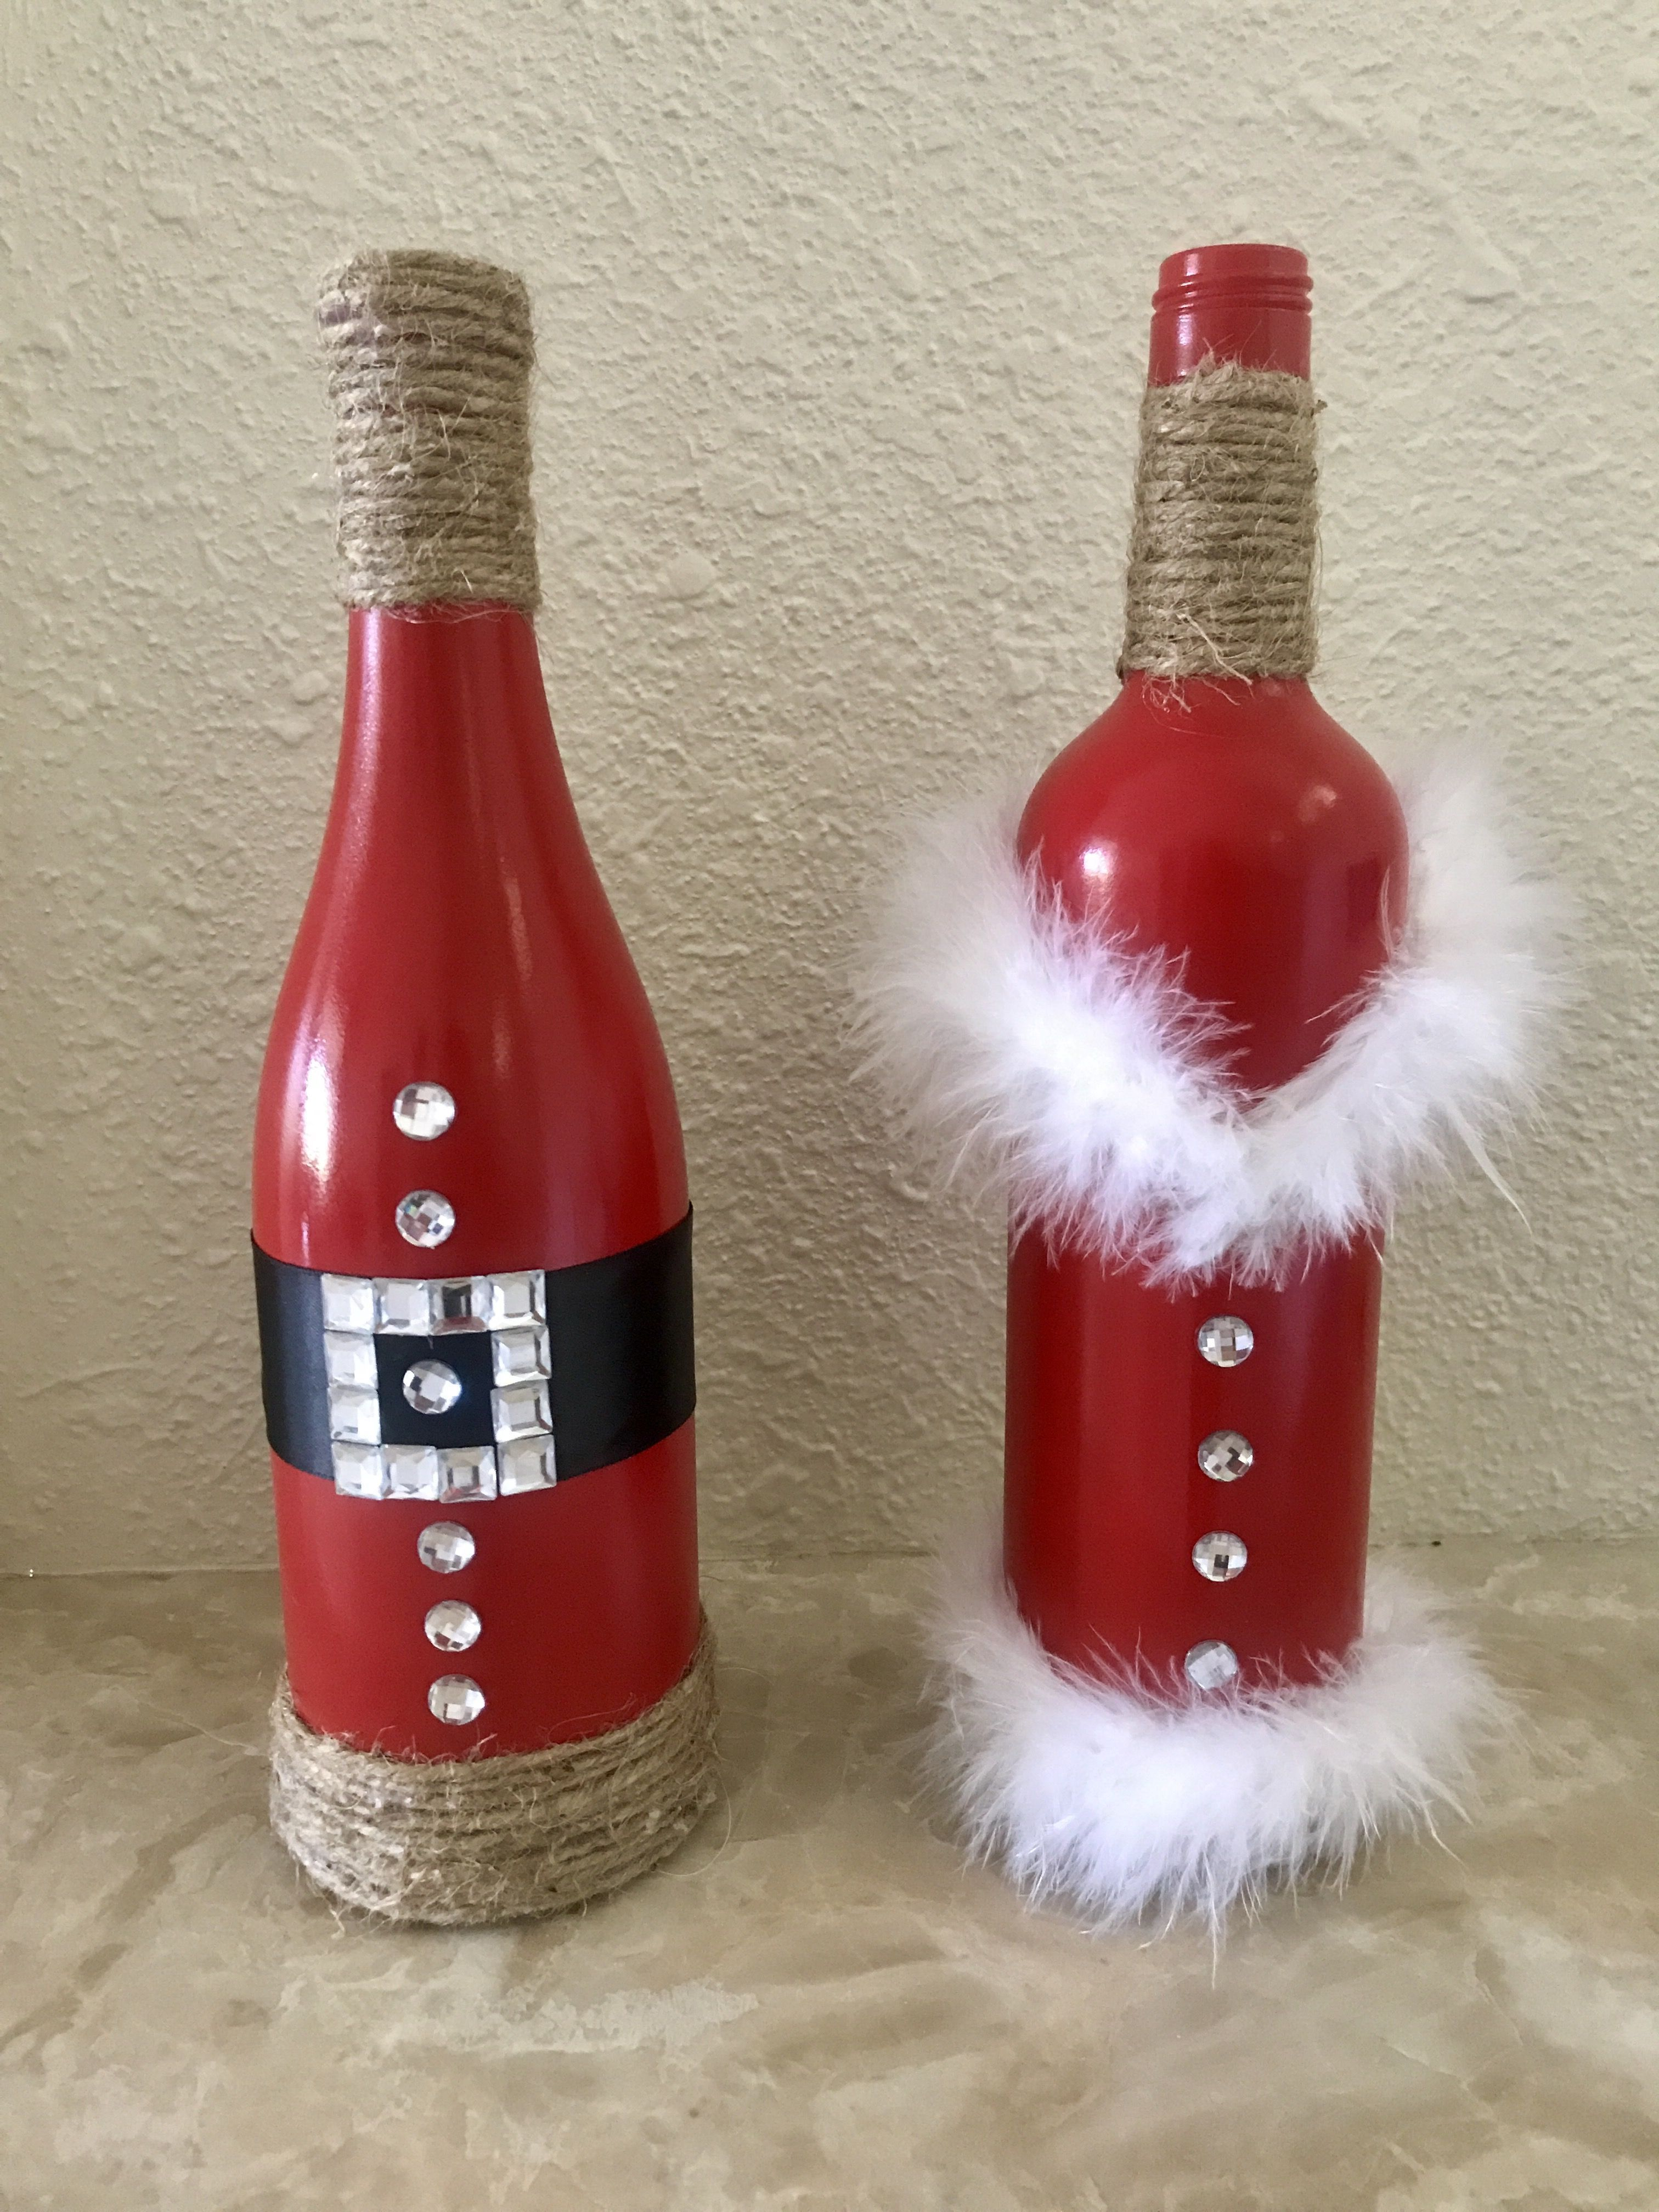 Found On Bing From Www Pinterest Fr Wohnzimmer Hausdekoration Schlafzimmer Wohnideen H Christmas Wine Bottles Wine Bottle Crafts Christmas Wine Bottle Diy